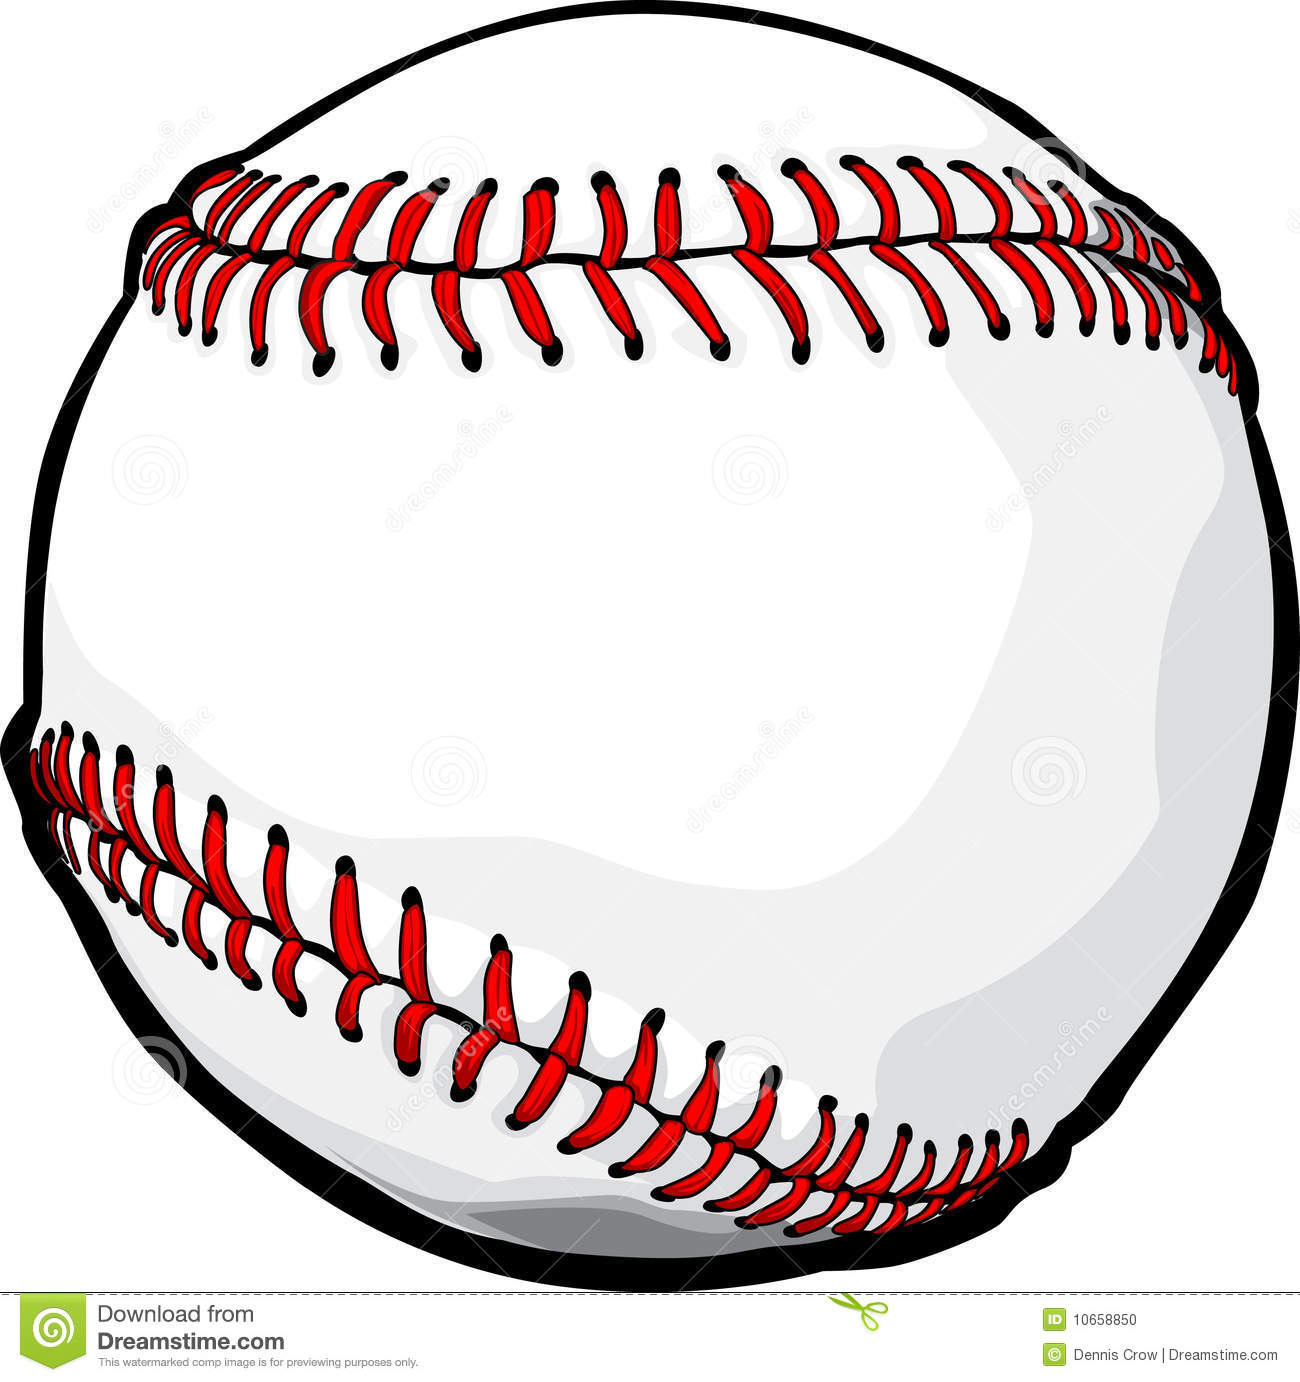 Baseball clipart vector free download 3 » Clipart Station.